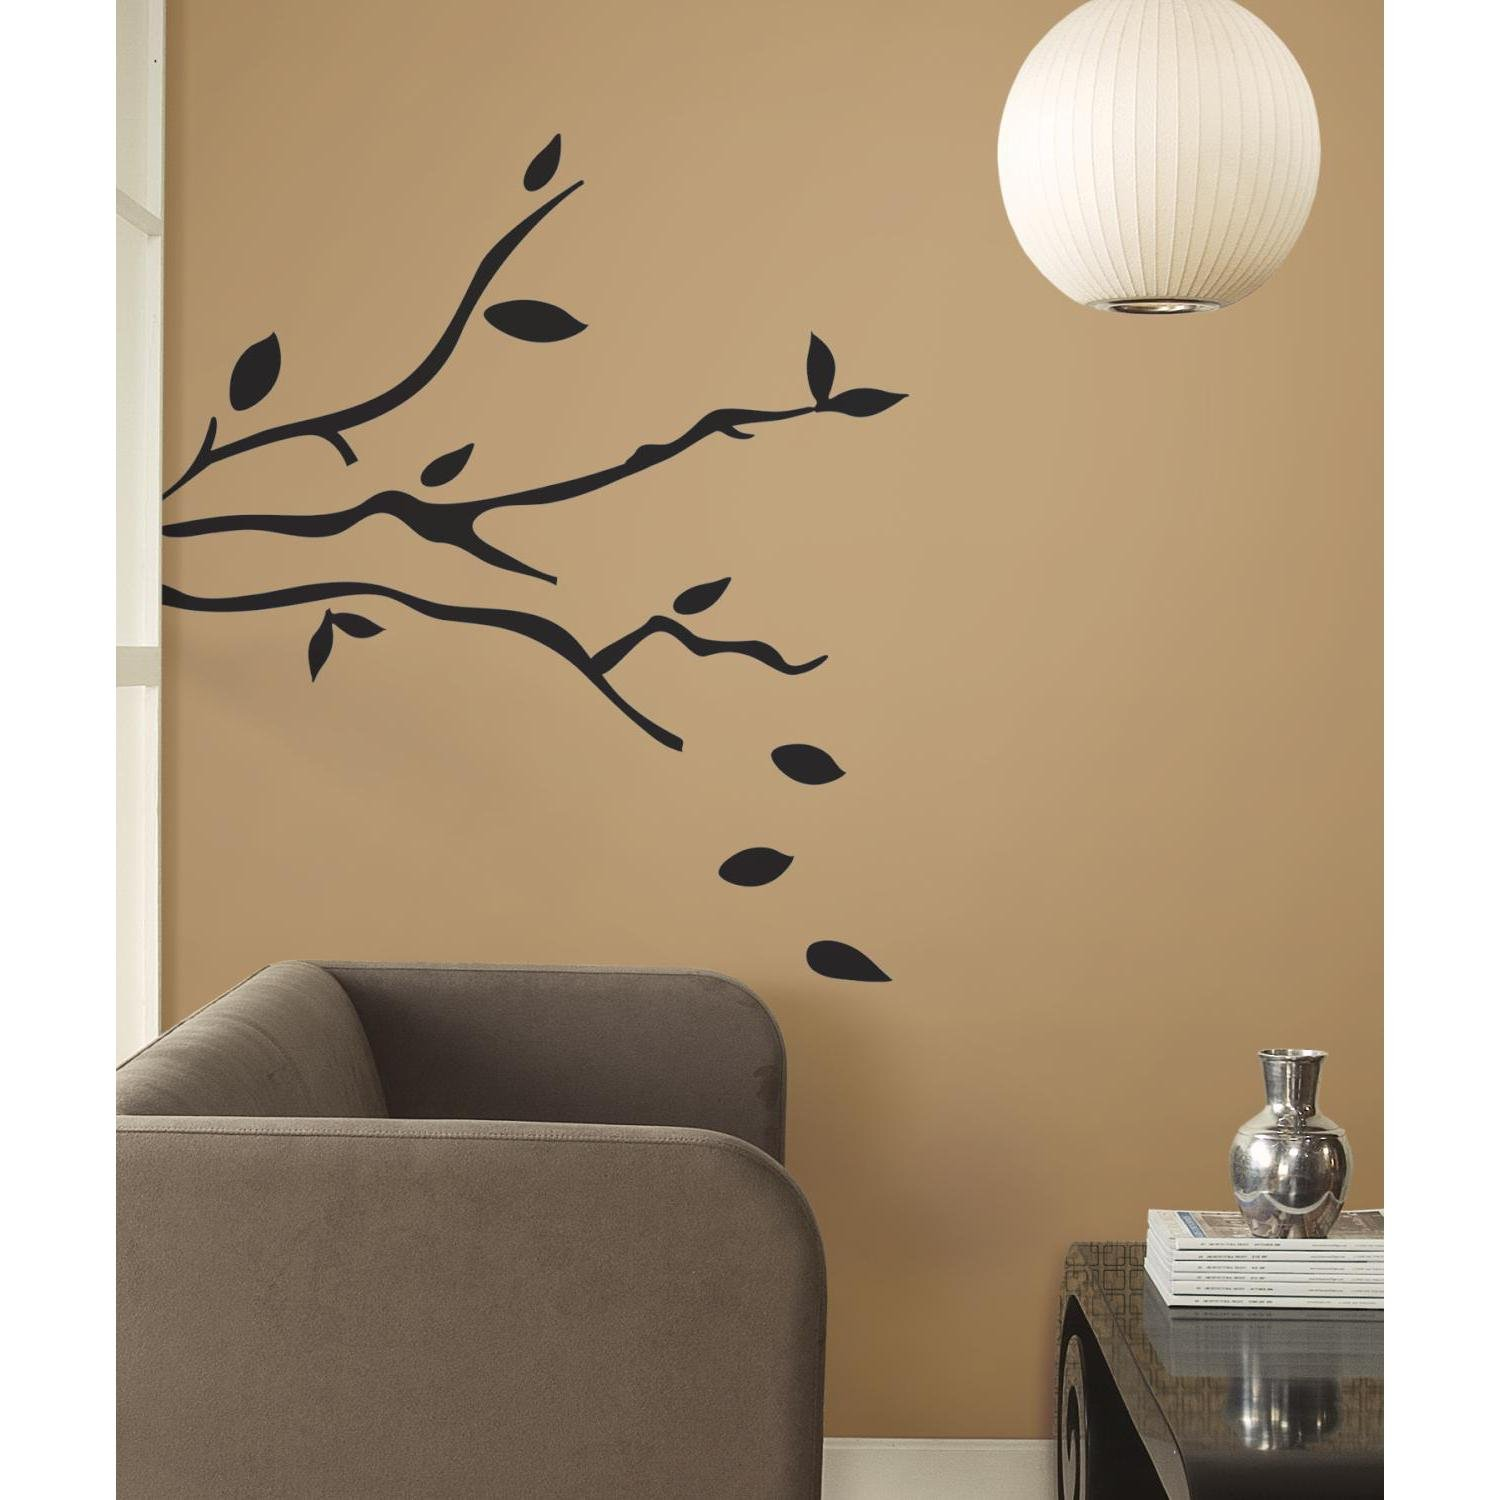 Roommates rmk1317gm tree branches peel stick wall decals wall roommates rmk1317gm tree branches peel stick wall decals wall decor stickers amazon amipublicfo Choice Image